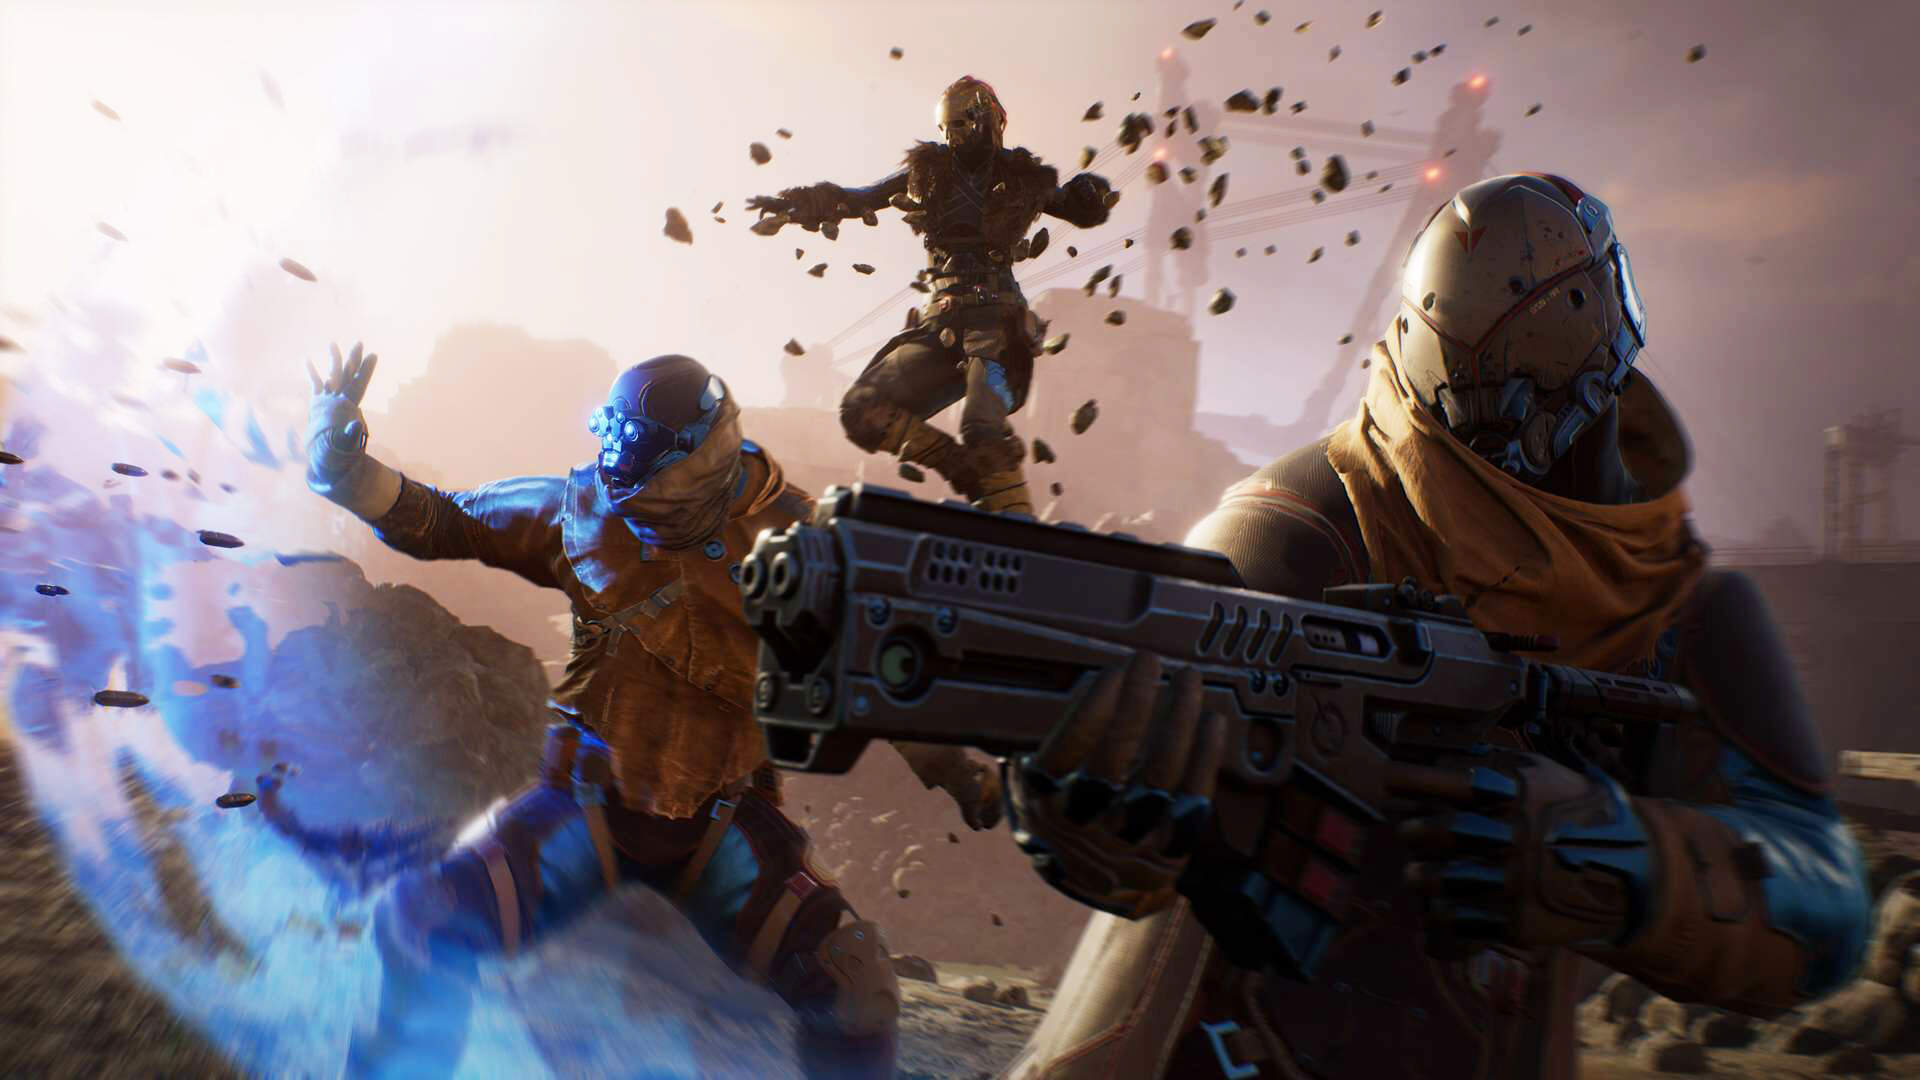 Square Enix's Co-Op Shooter Outriders Pushed to Next February